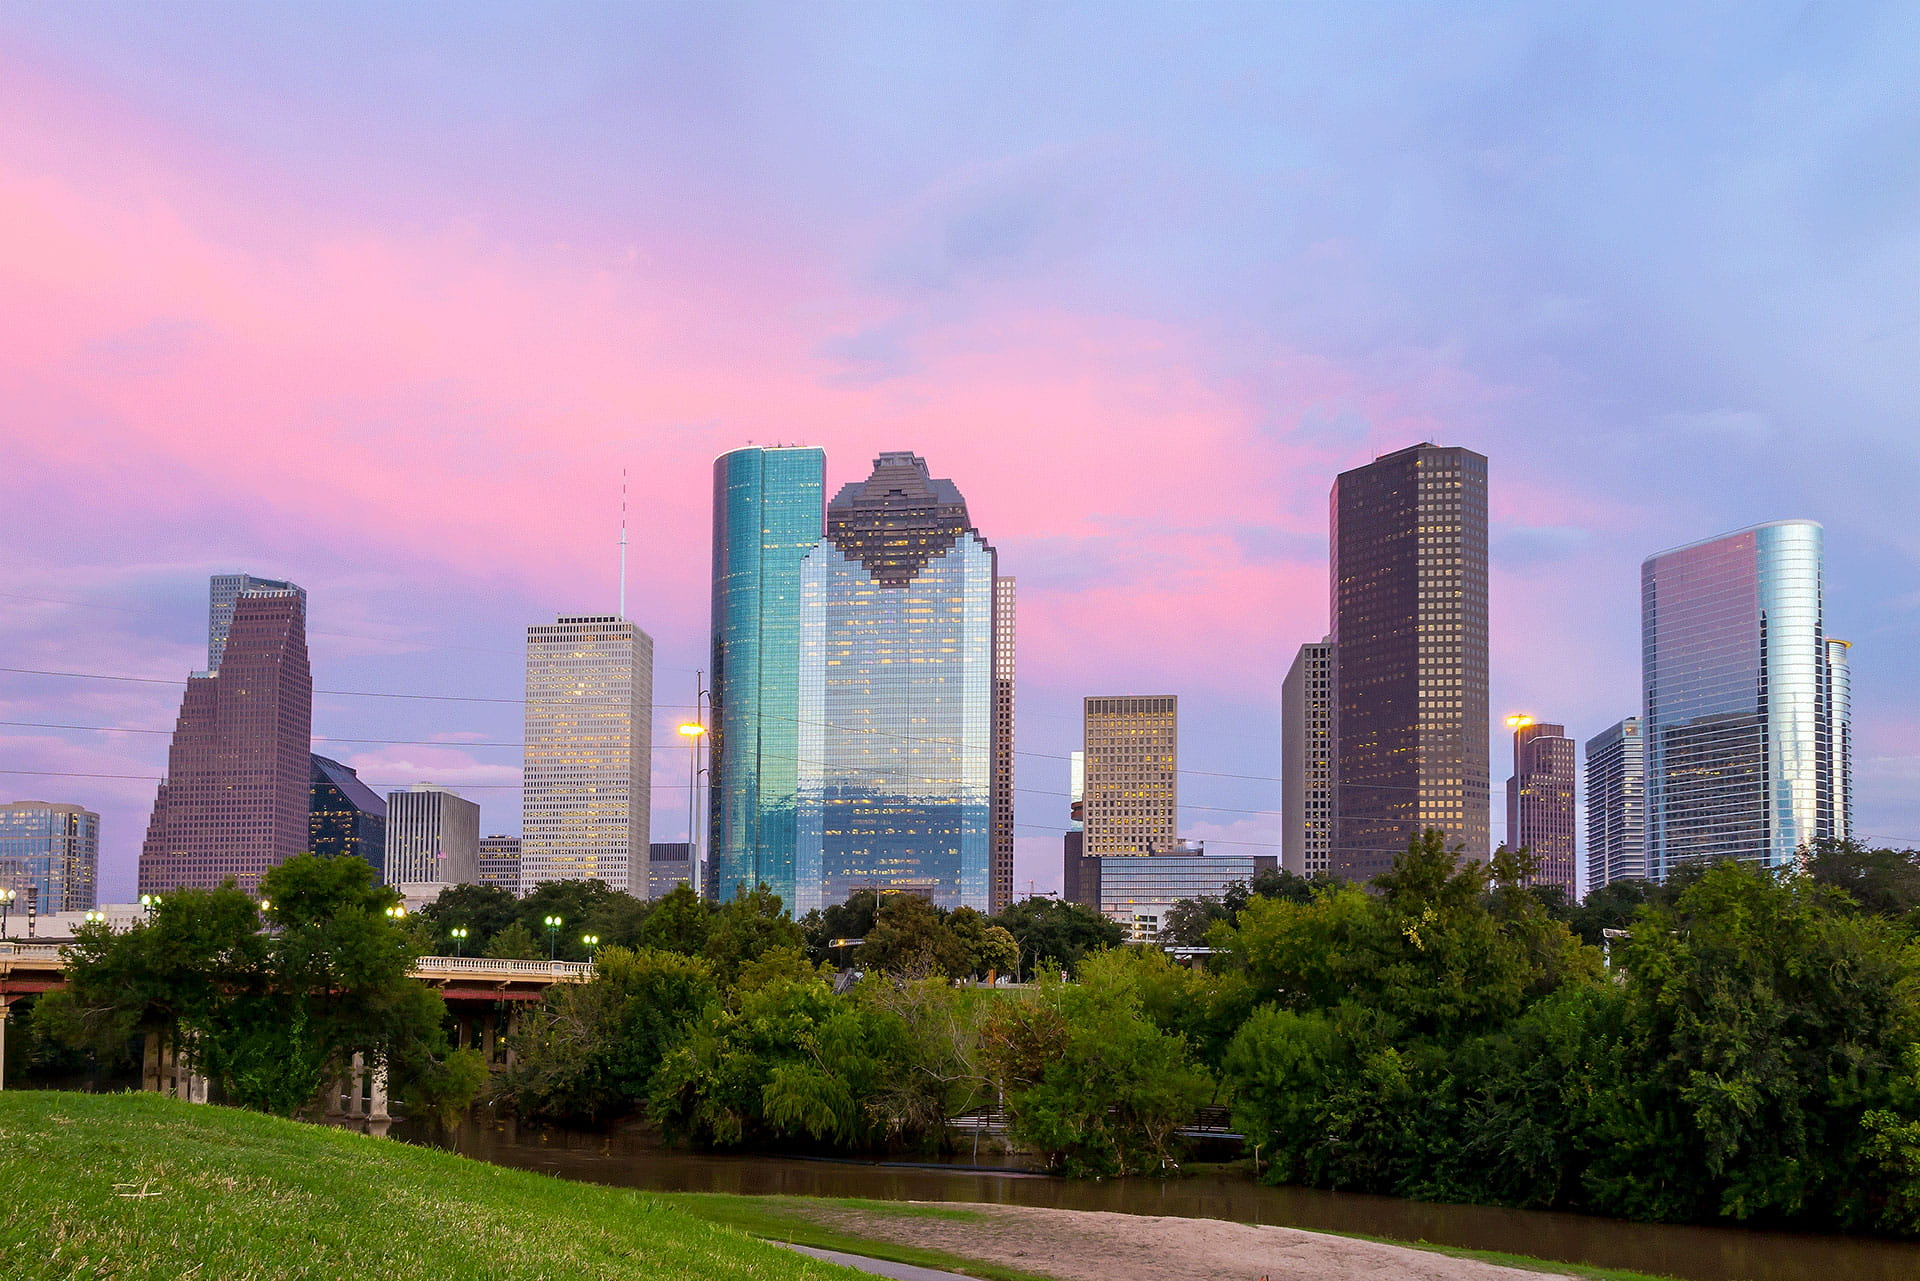 Colorful Skies Houston Skyline from Park